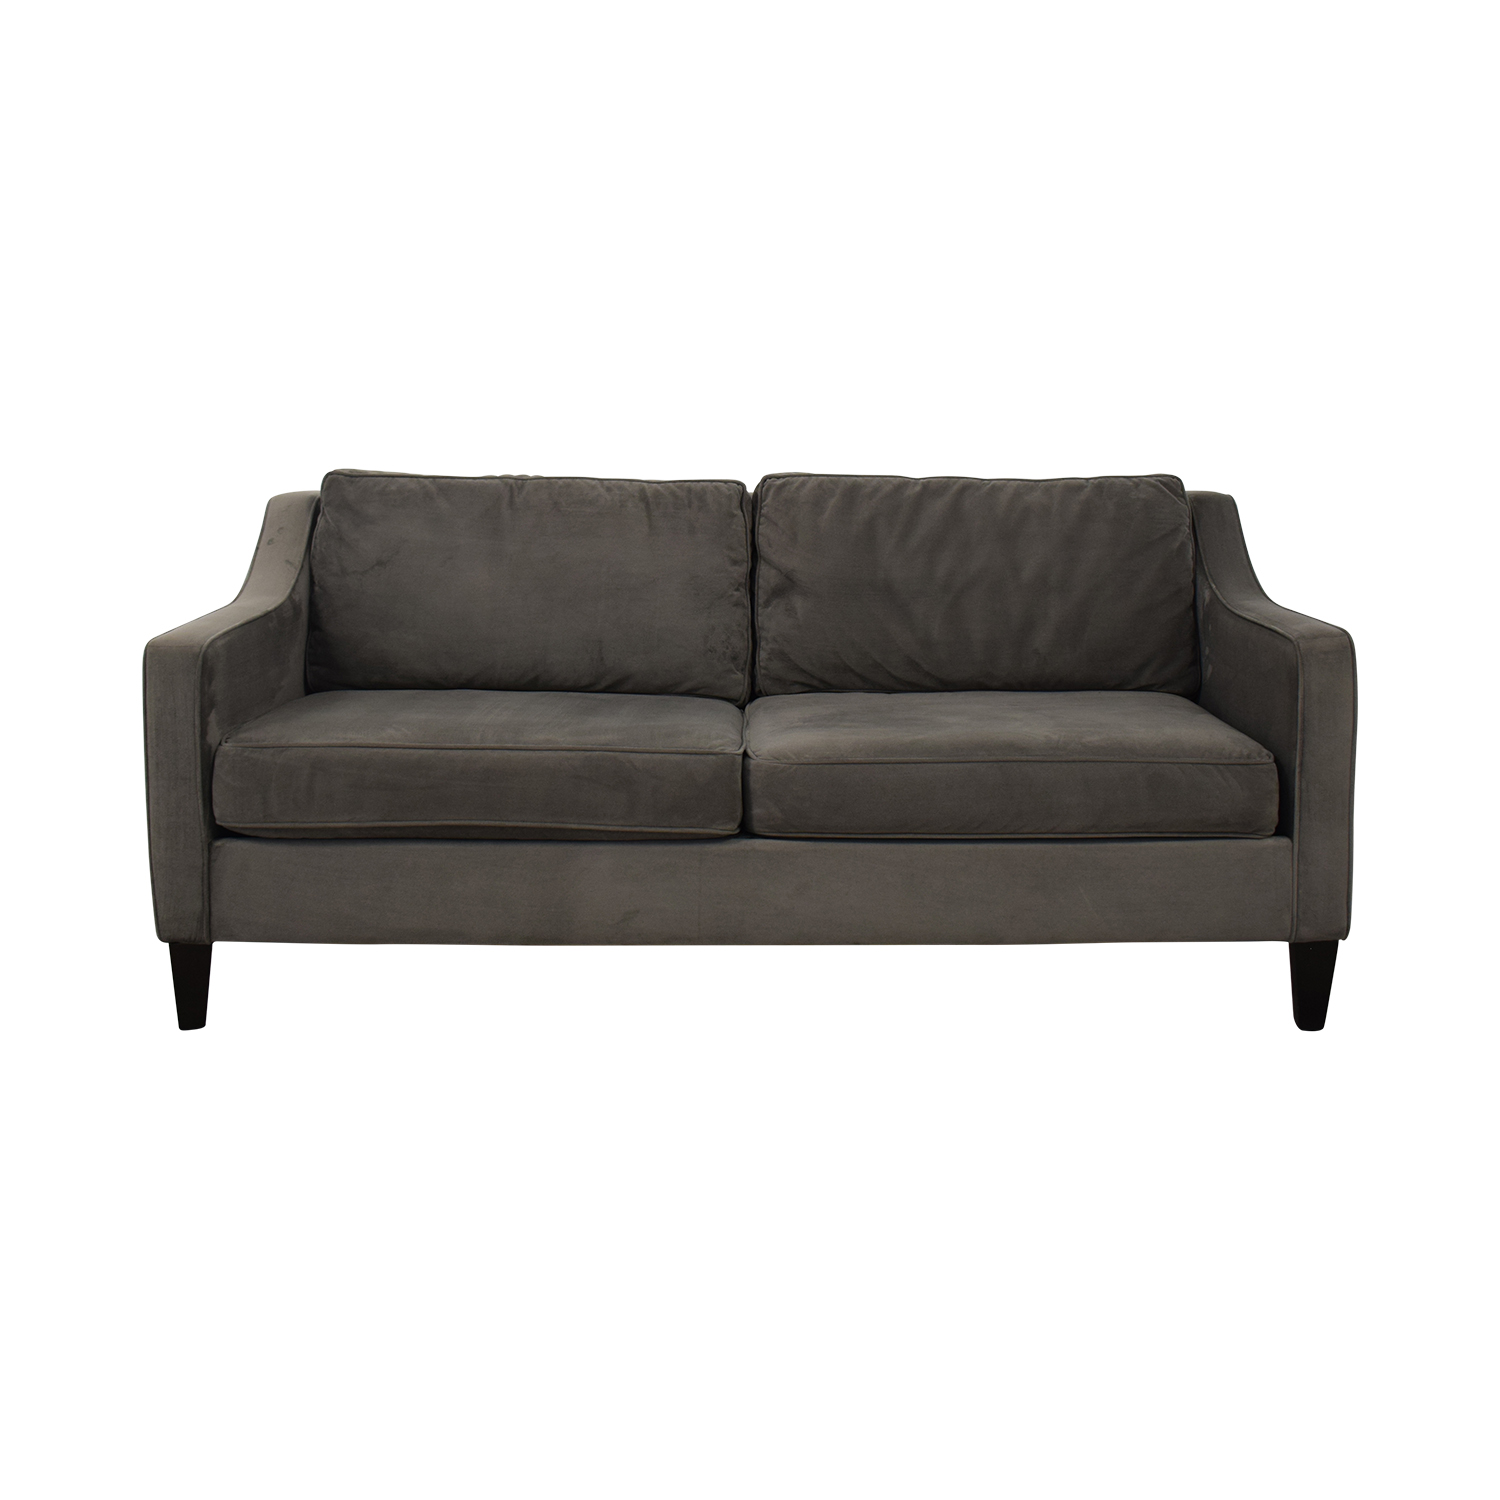 West Elm West Elm Paidge Sofa discount